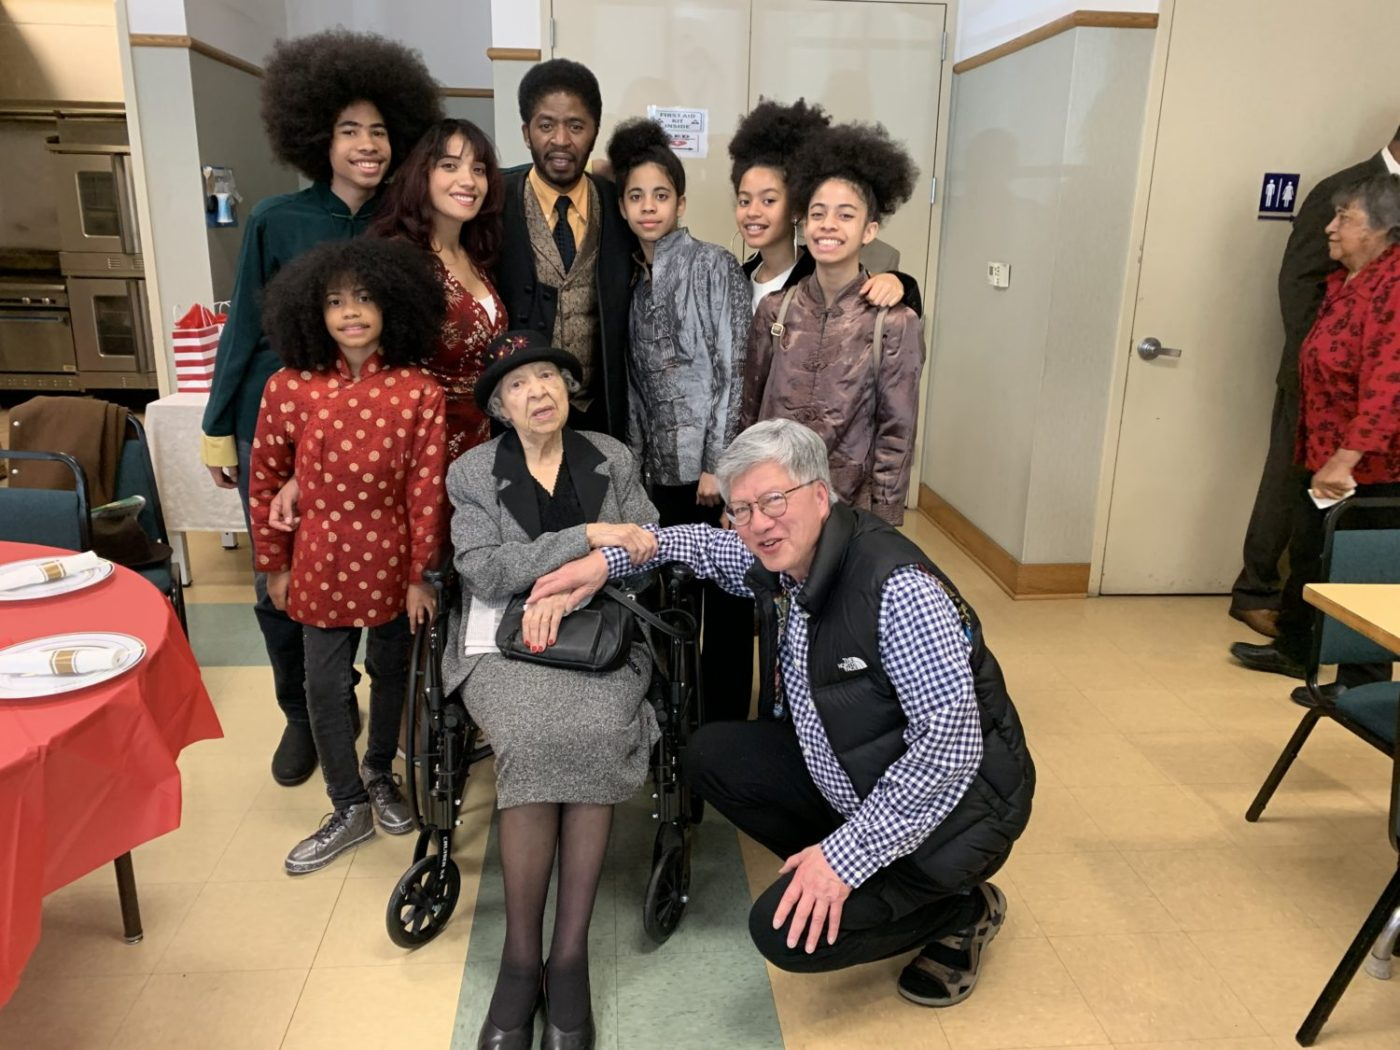 Verlie-Mae-Pickens-Curtis-Family-C-Notes-Maestro-Curtis-Nola-Curtis-children-Anh-Le-at-Jones-Memorial-United-Methodist-Church-Mothers-Day-2019-by-Anh-Le-1400x1050, We honor you, Ms. Verlie Mae Pickens, Culture Currents